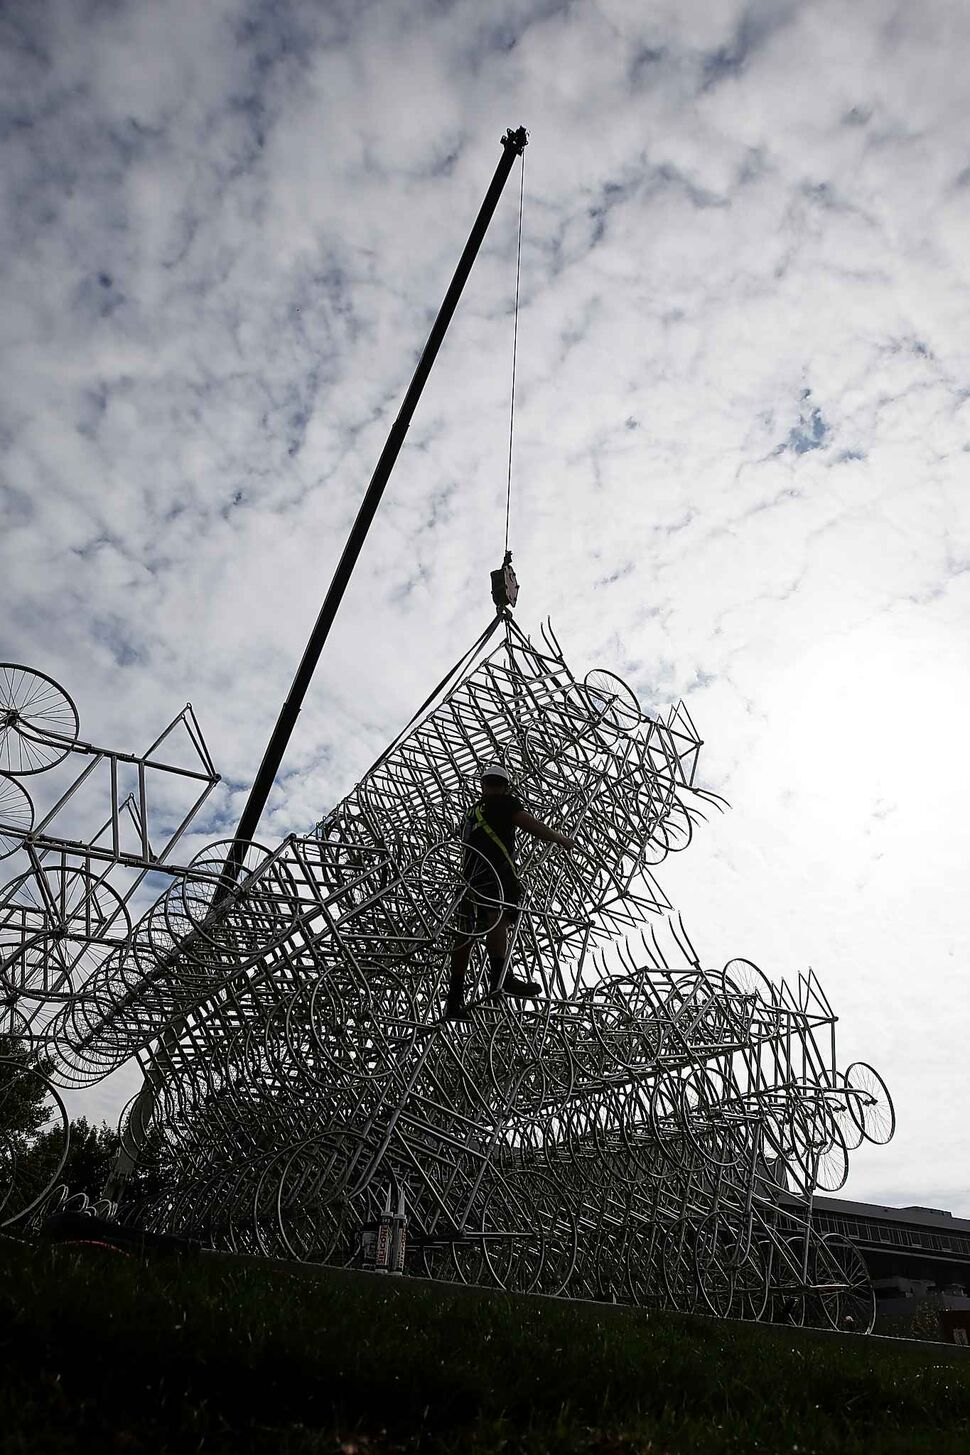 Matt Syles, art installation technician with MTEC, works on installing a bicycle sculpture by artist Ai Weiwei in Winnipeg Tuesday. (JOHN WOODS / WINNIPEG FREE PRESS)